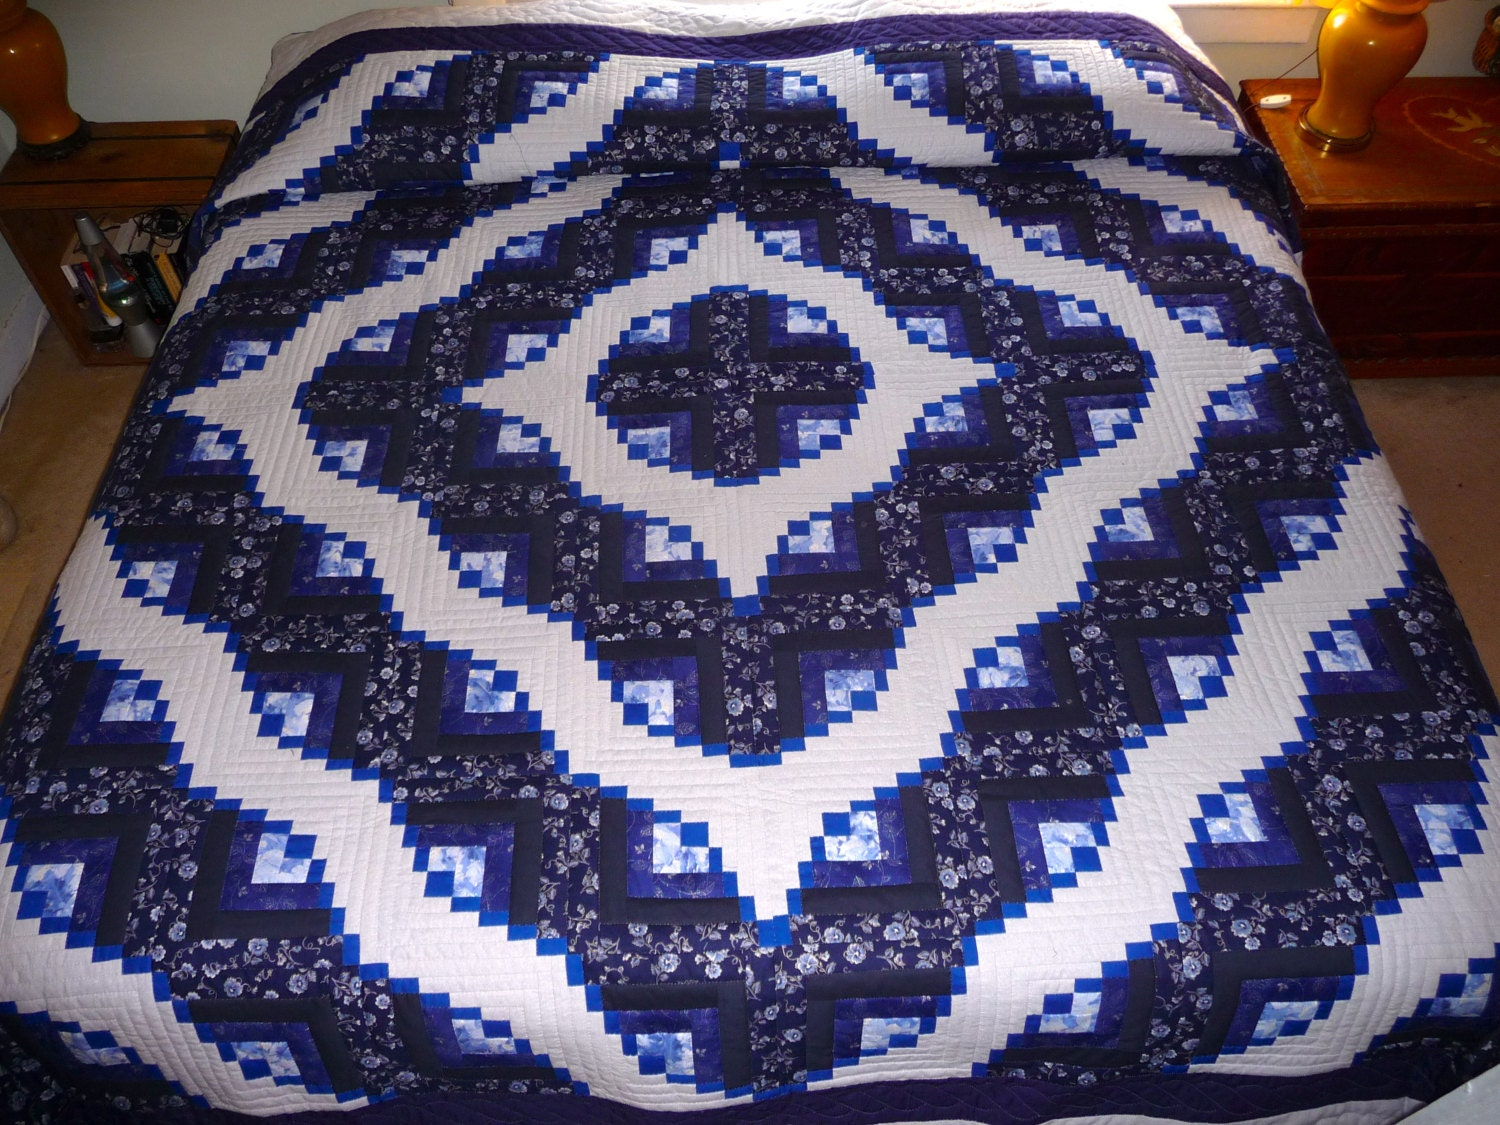 Eureka Log Cabin Amish Quilt